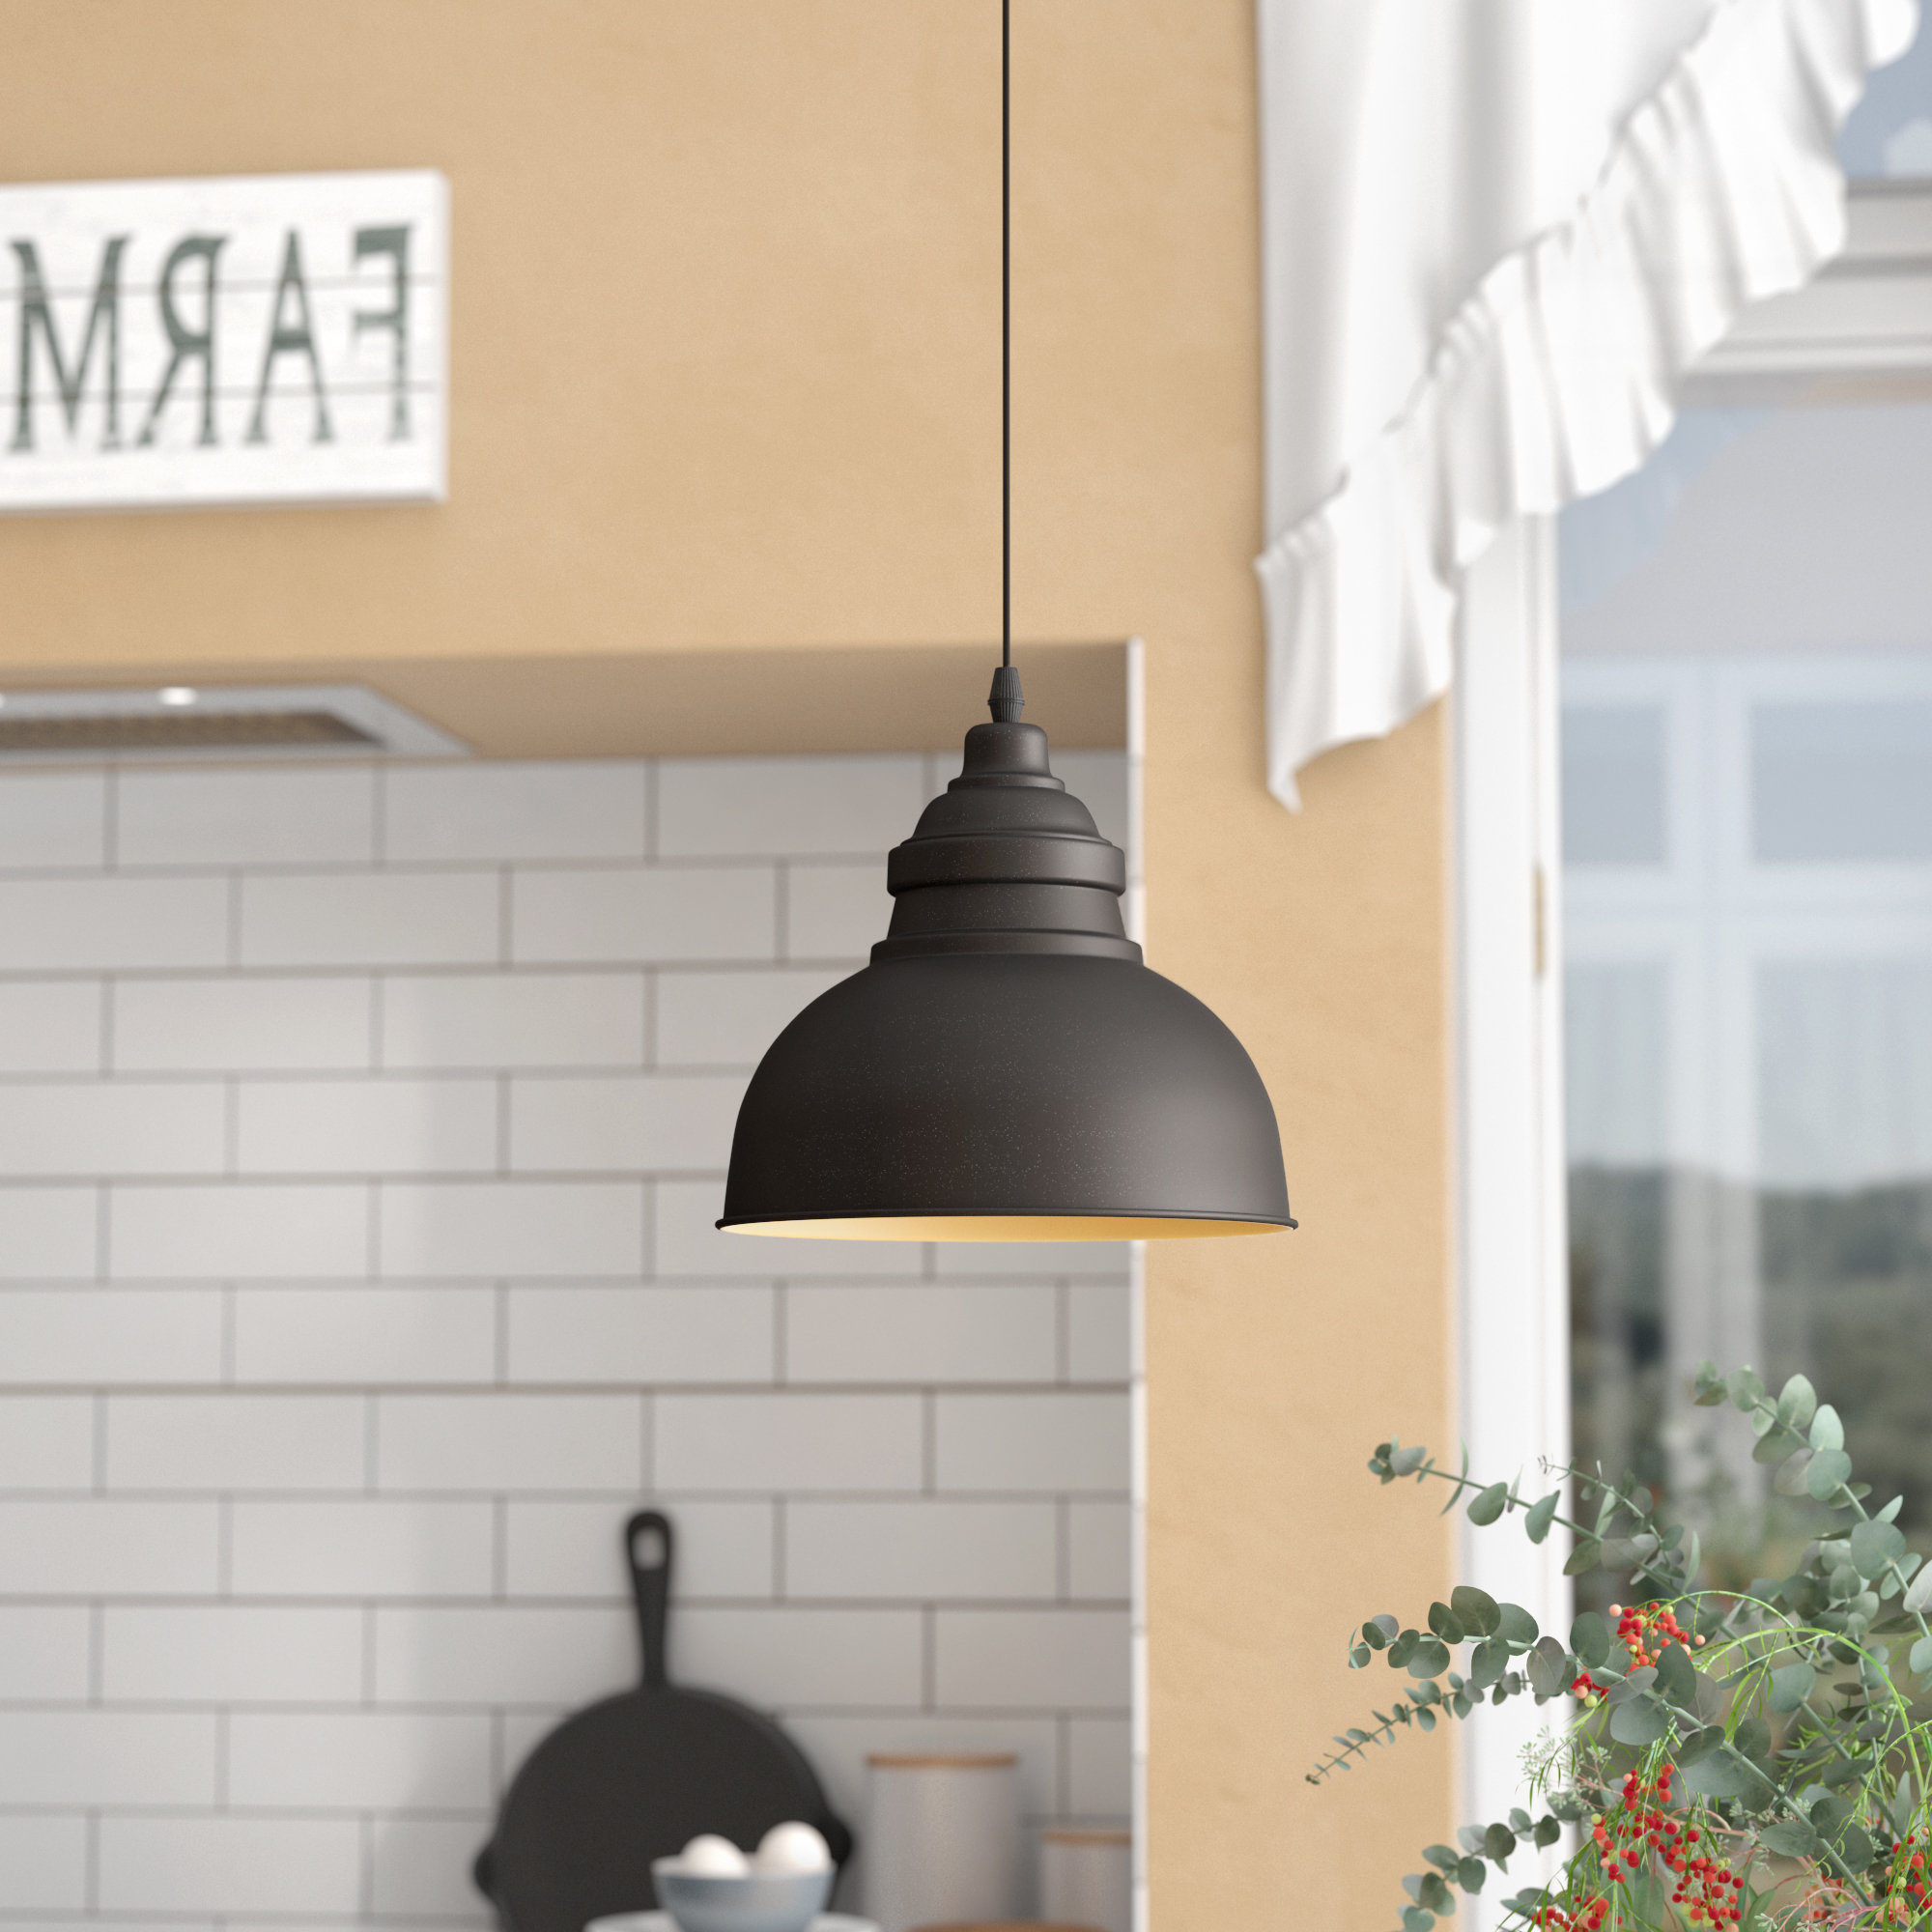 Preferred Laurel Foundry Modern Farmhouse Bouvet 1 Light Single Dome With Regard To Adriana Black 1 Light Single Dome Pendants (View 6 of 20)